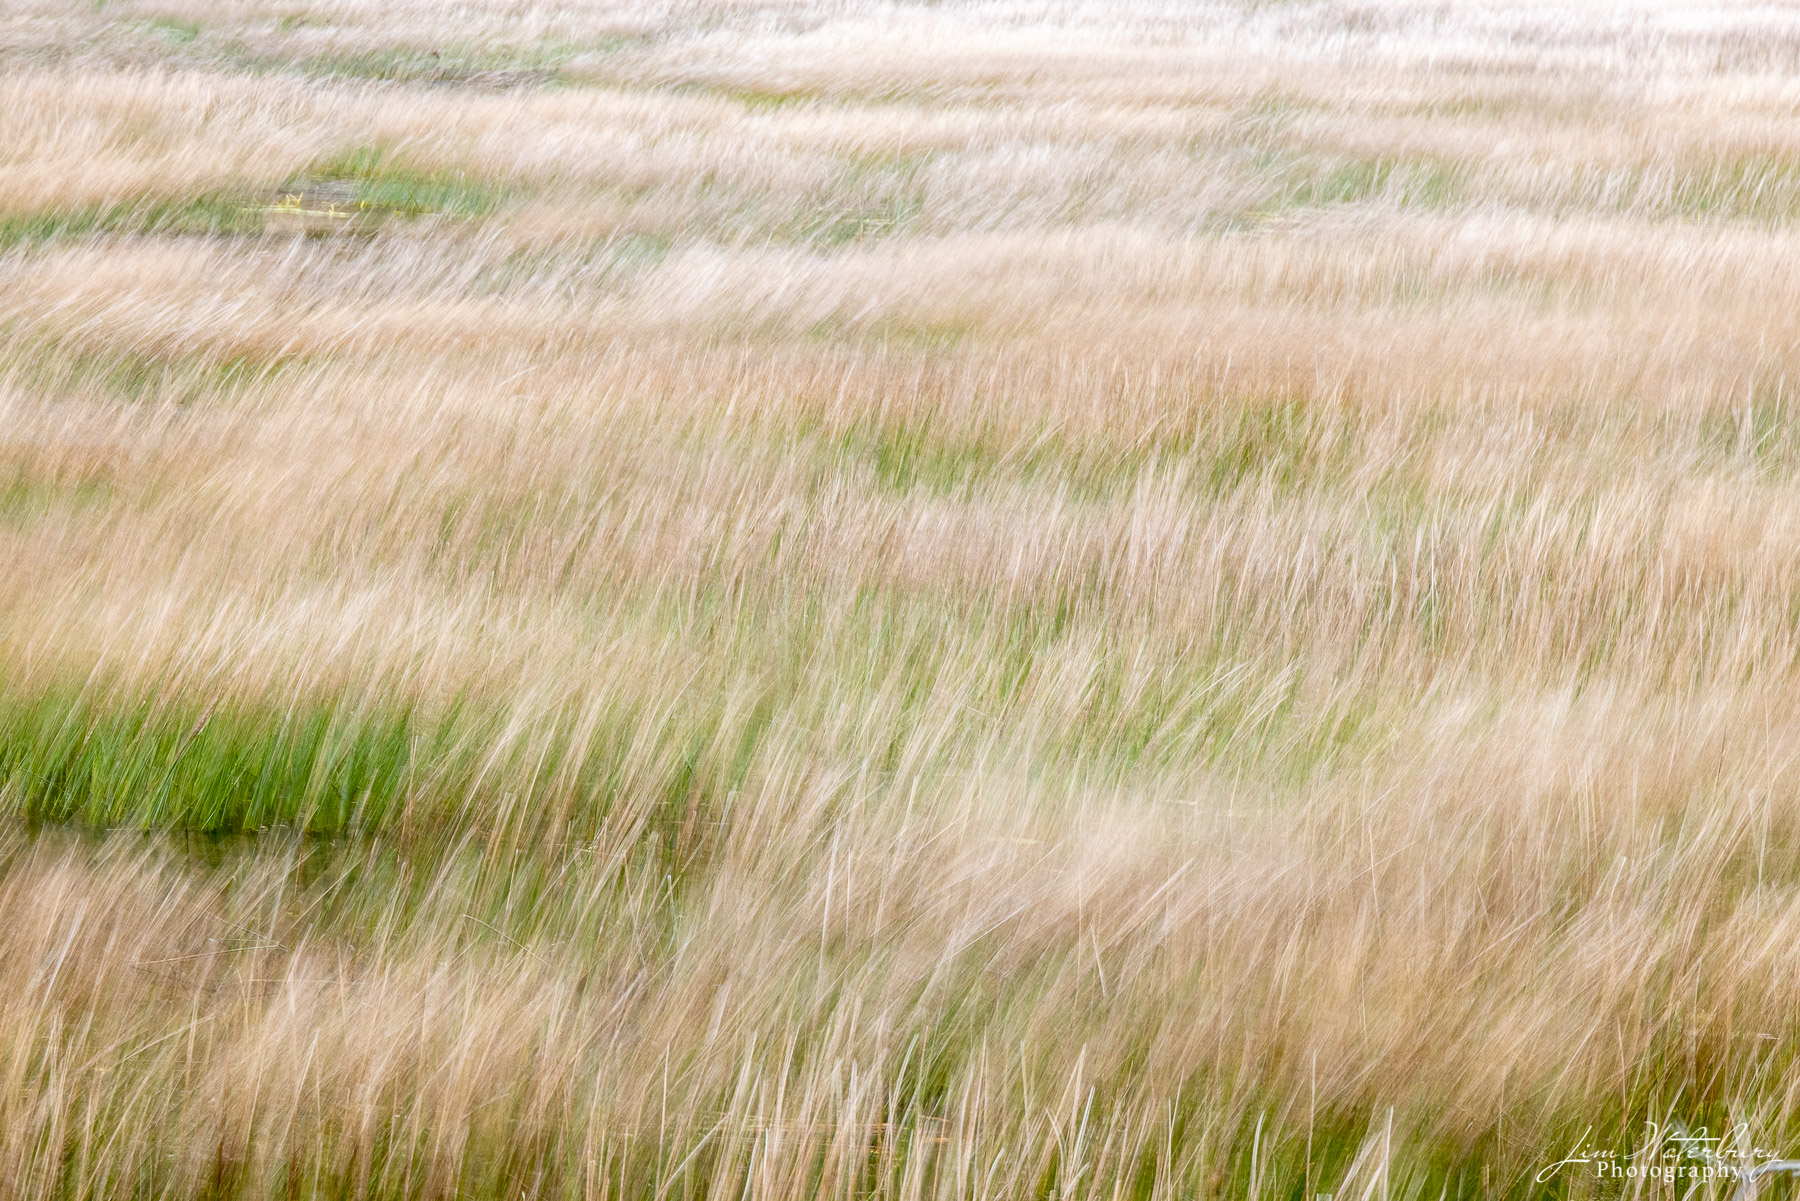 Grasses dancing in the wind.